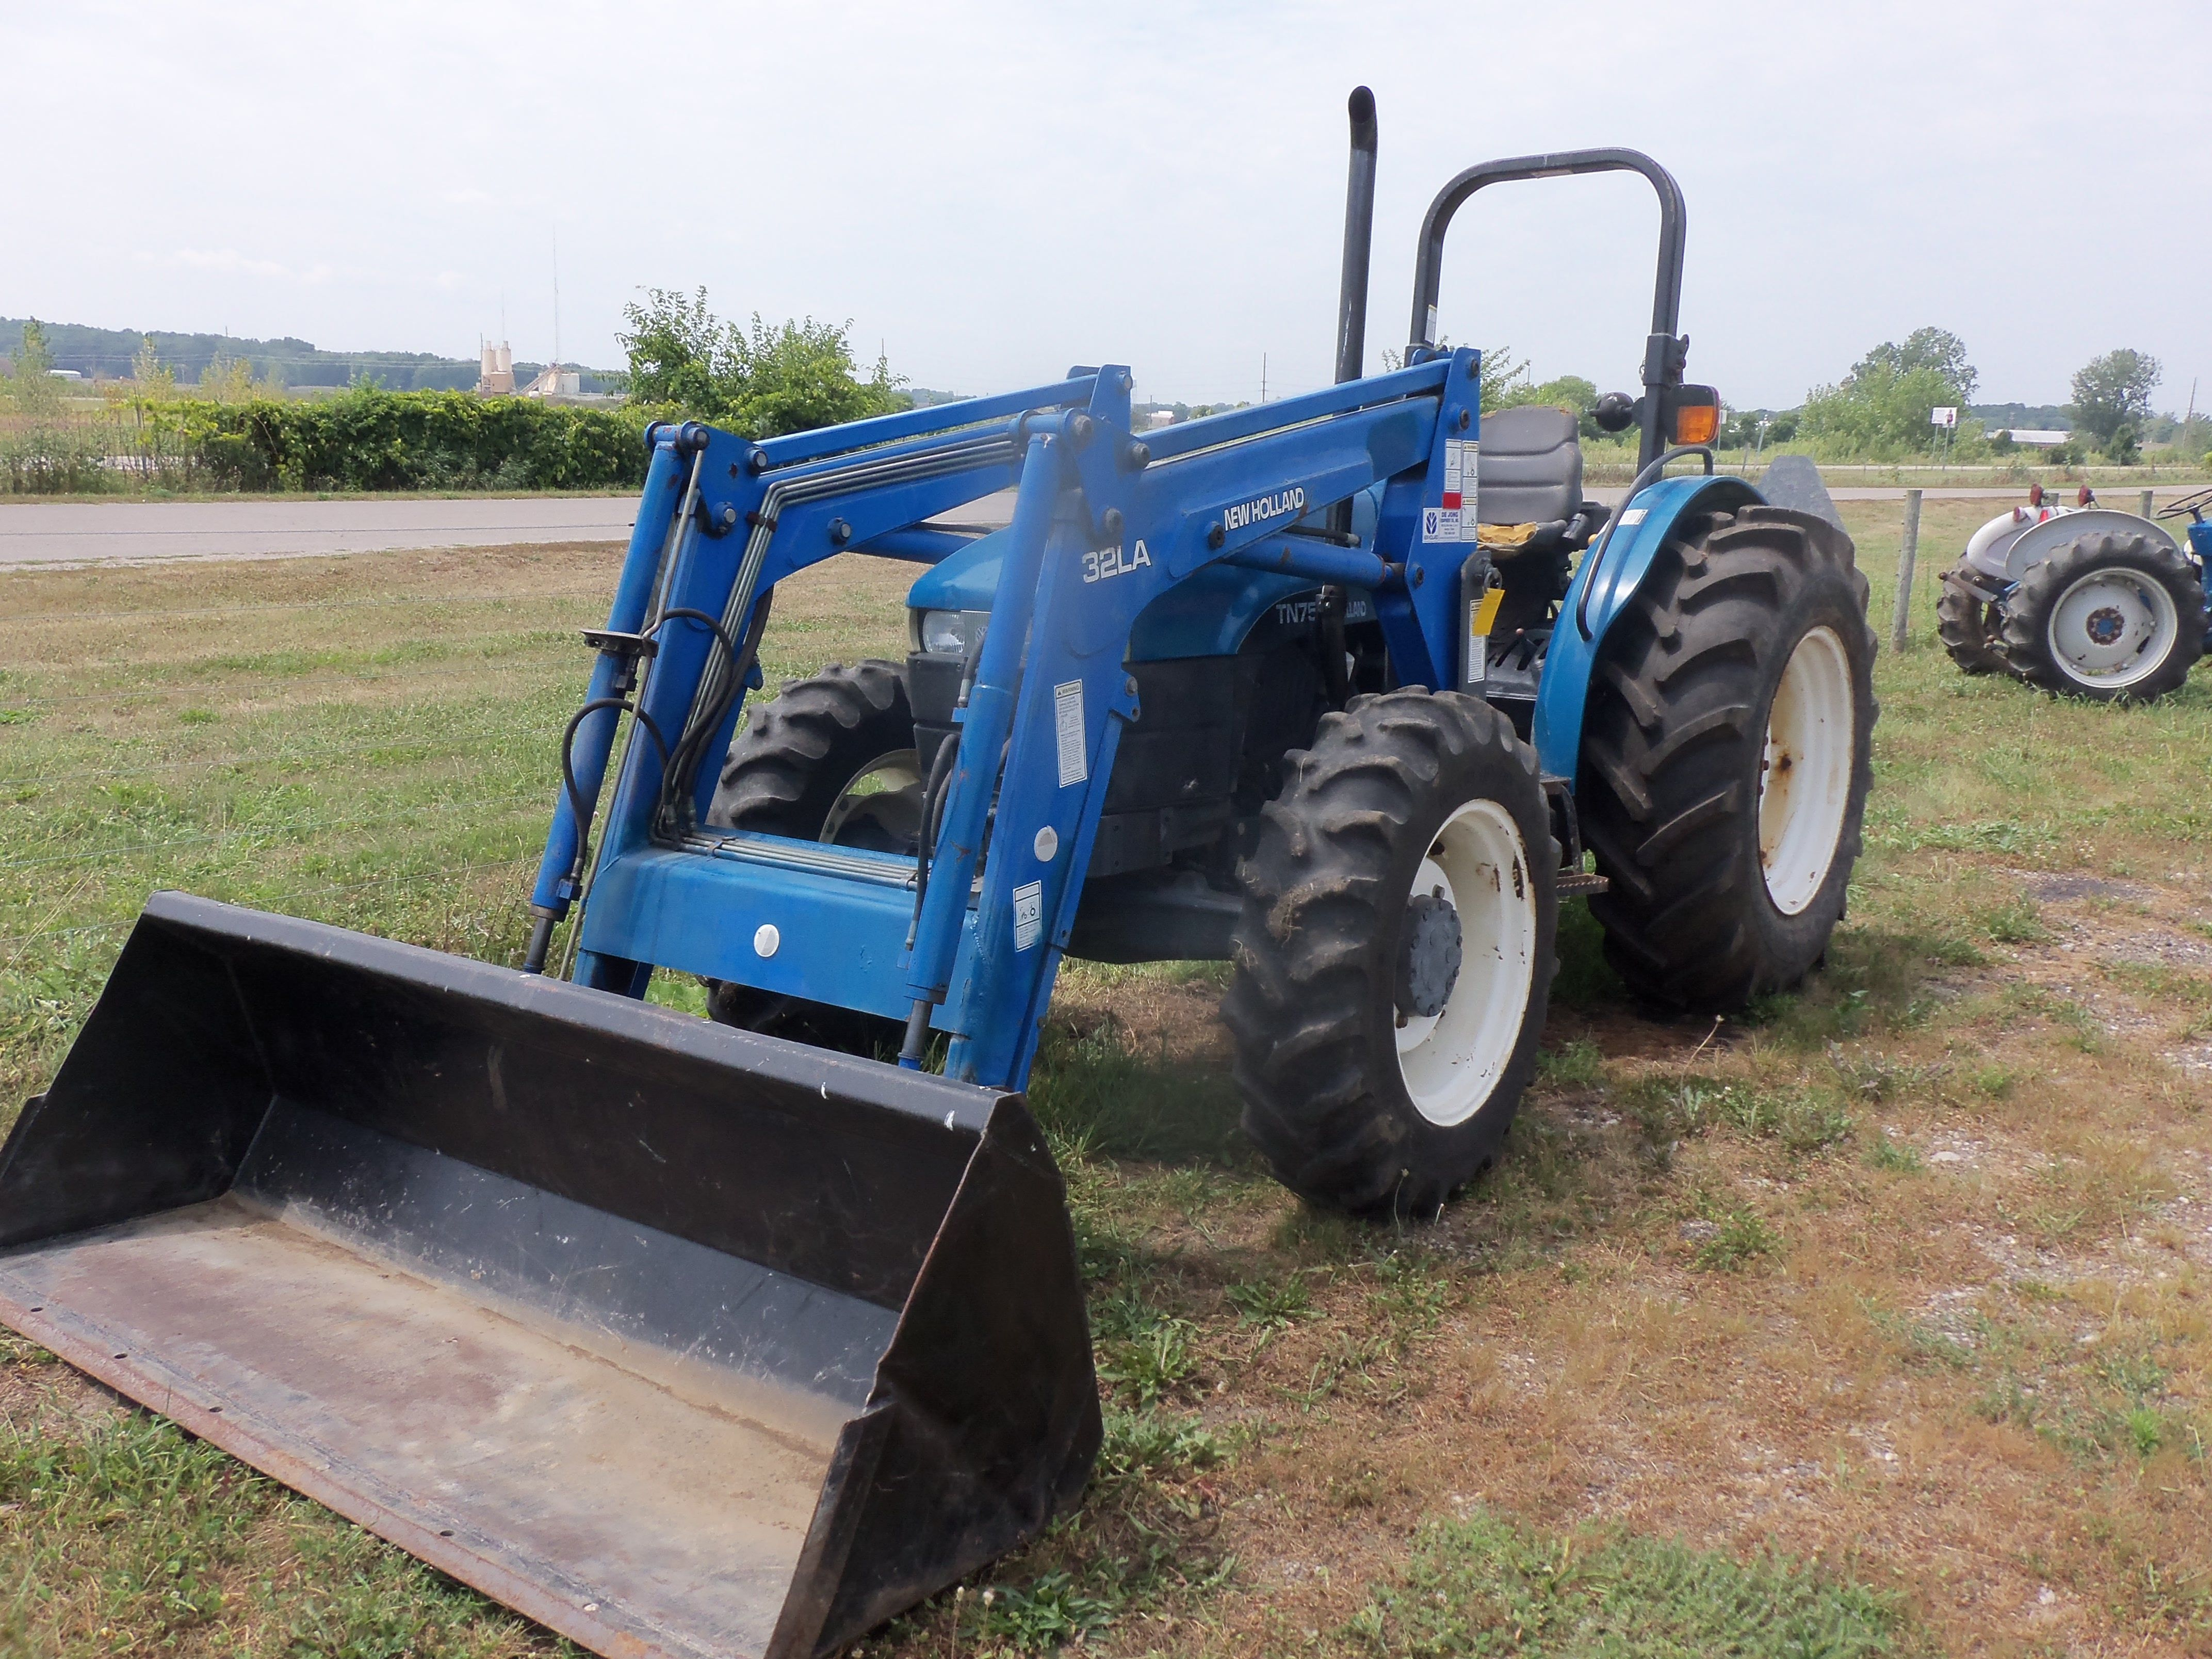 New Holland TN75 with 32LA loader